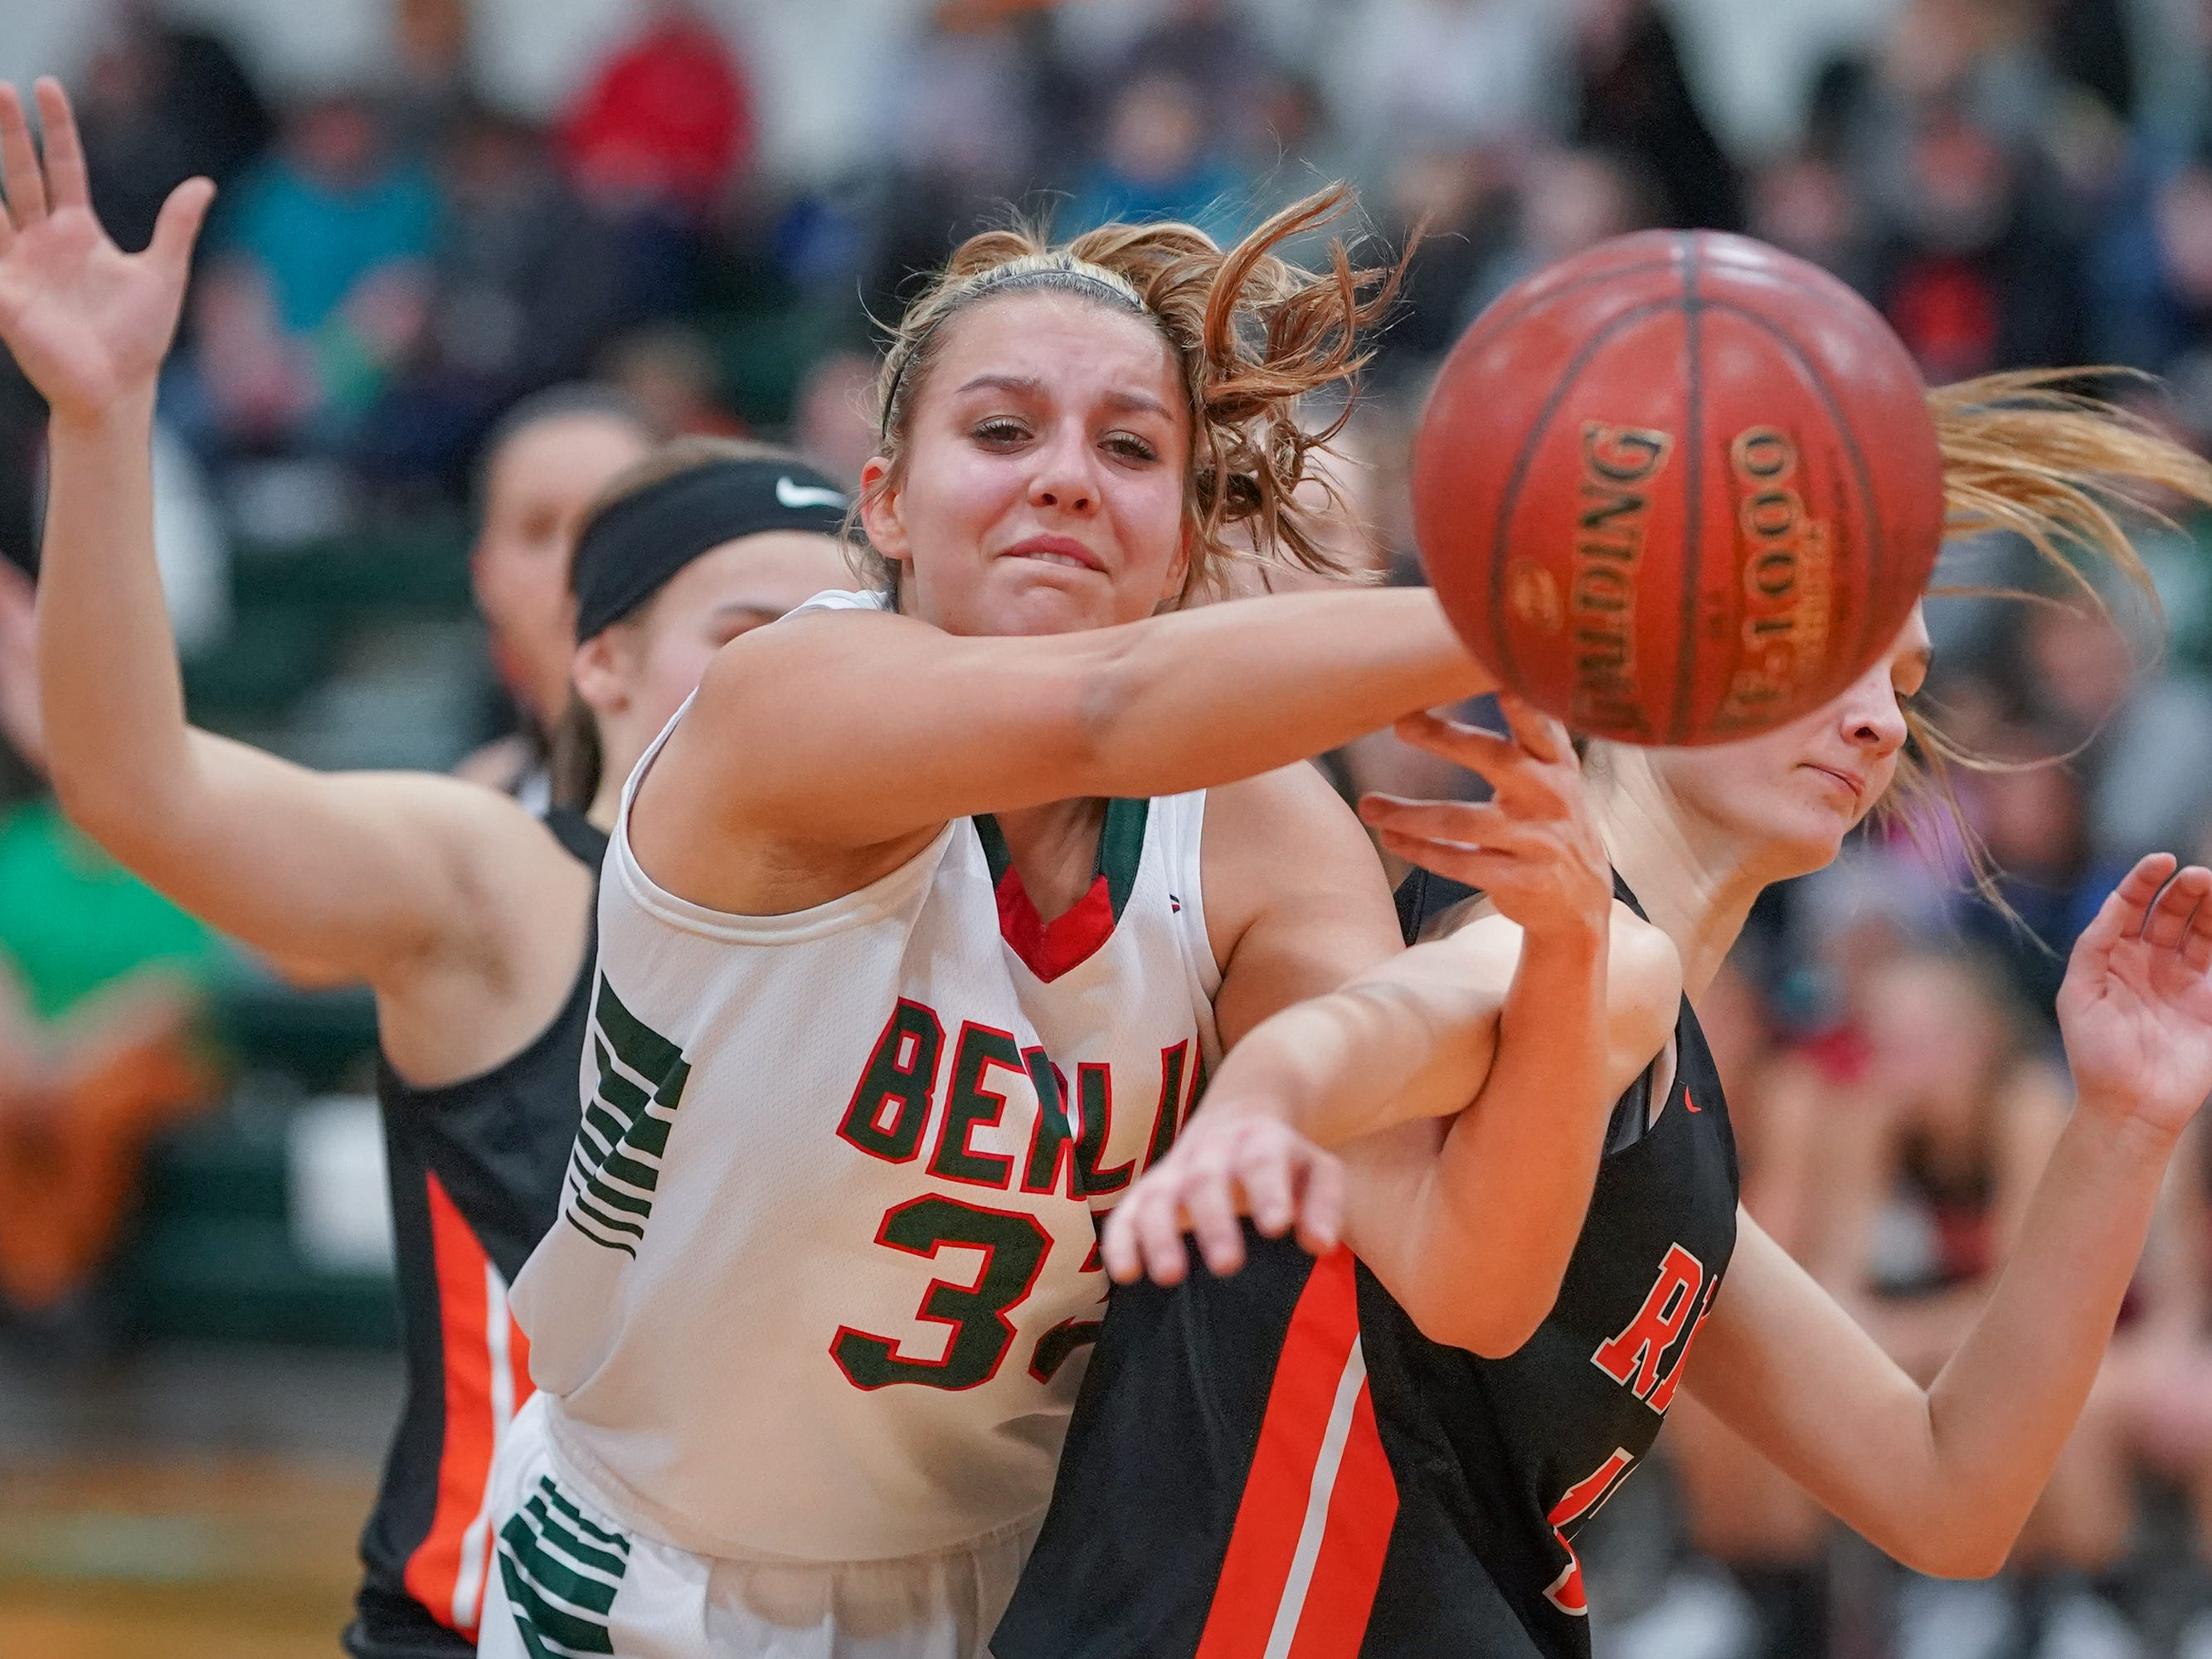 Madalyn Naparalla (33) of Berlin gets a pass away while in double coverage. The Berlin Indians hosted the Ripon Tigers in an East Central Conference girls basketball matchup Friday evening, December 21, 2018.